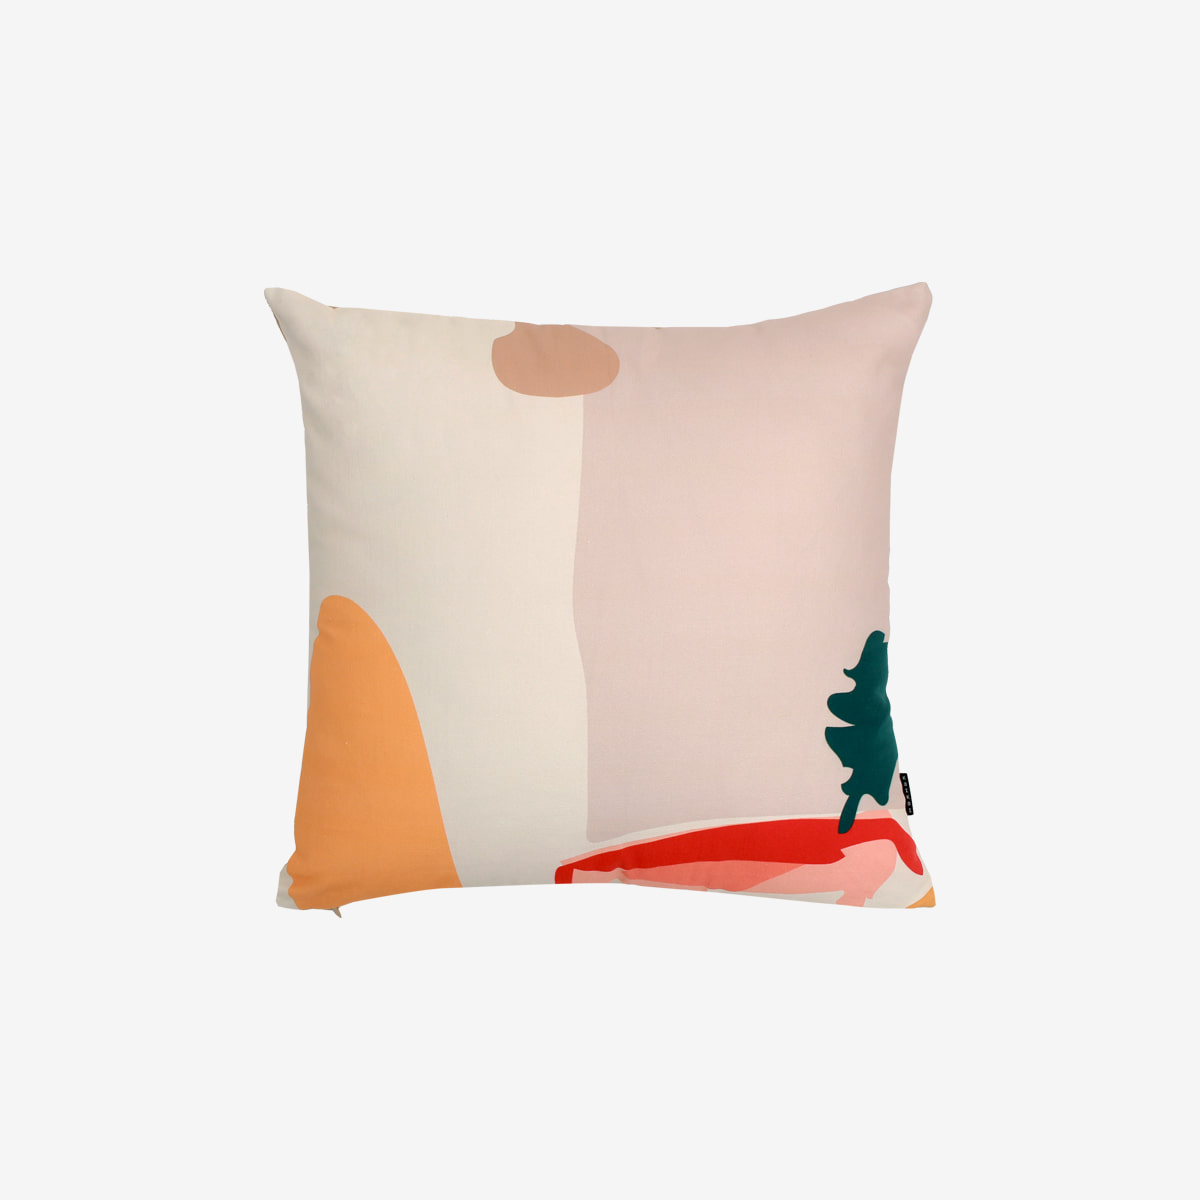 Daily scenery cushion